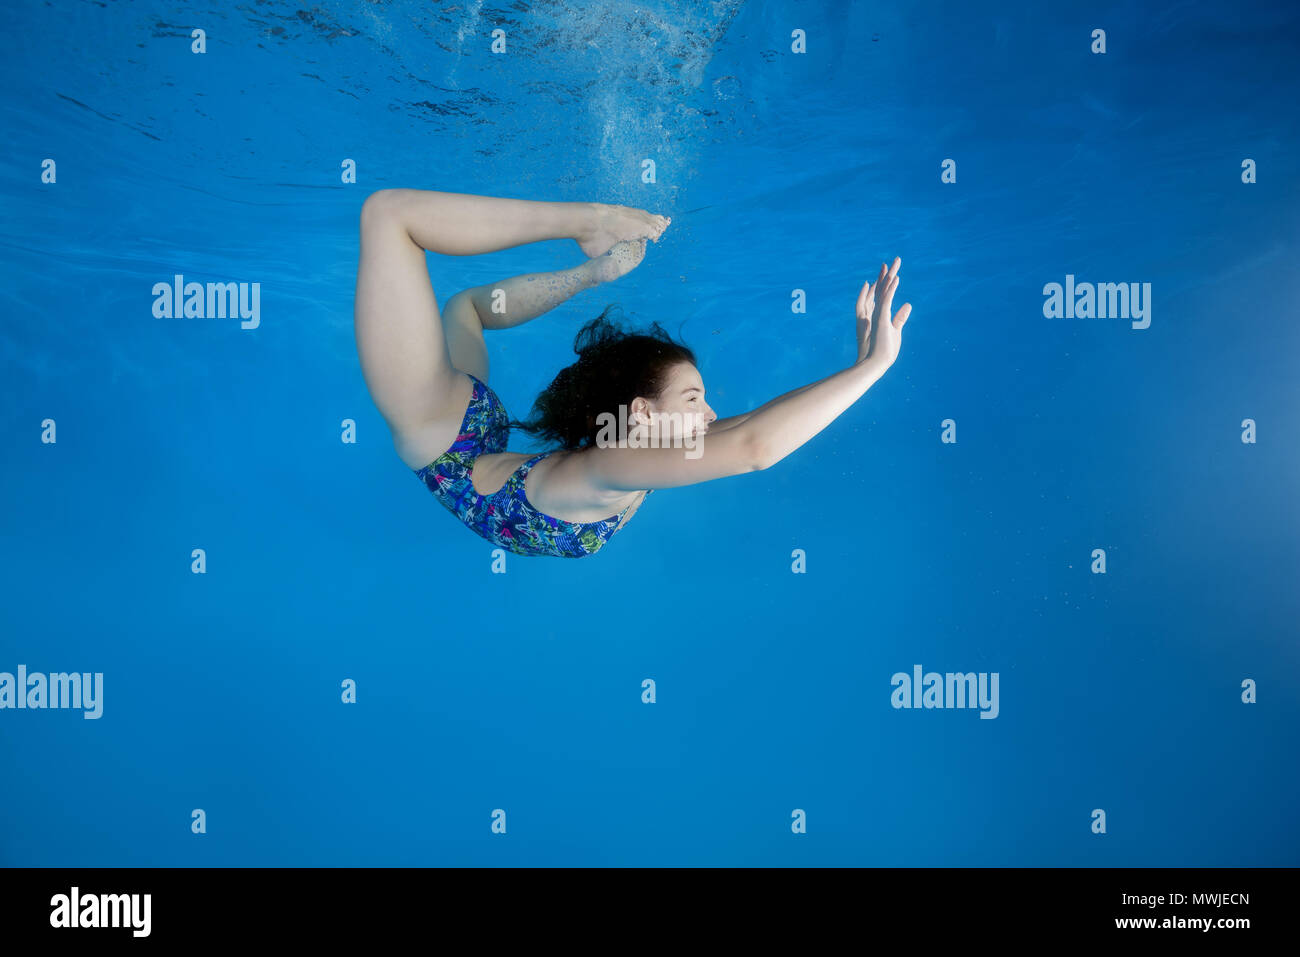 Girl curled into a wheel under water in the pool. Underwater acrobatics - Stock Image